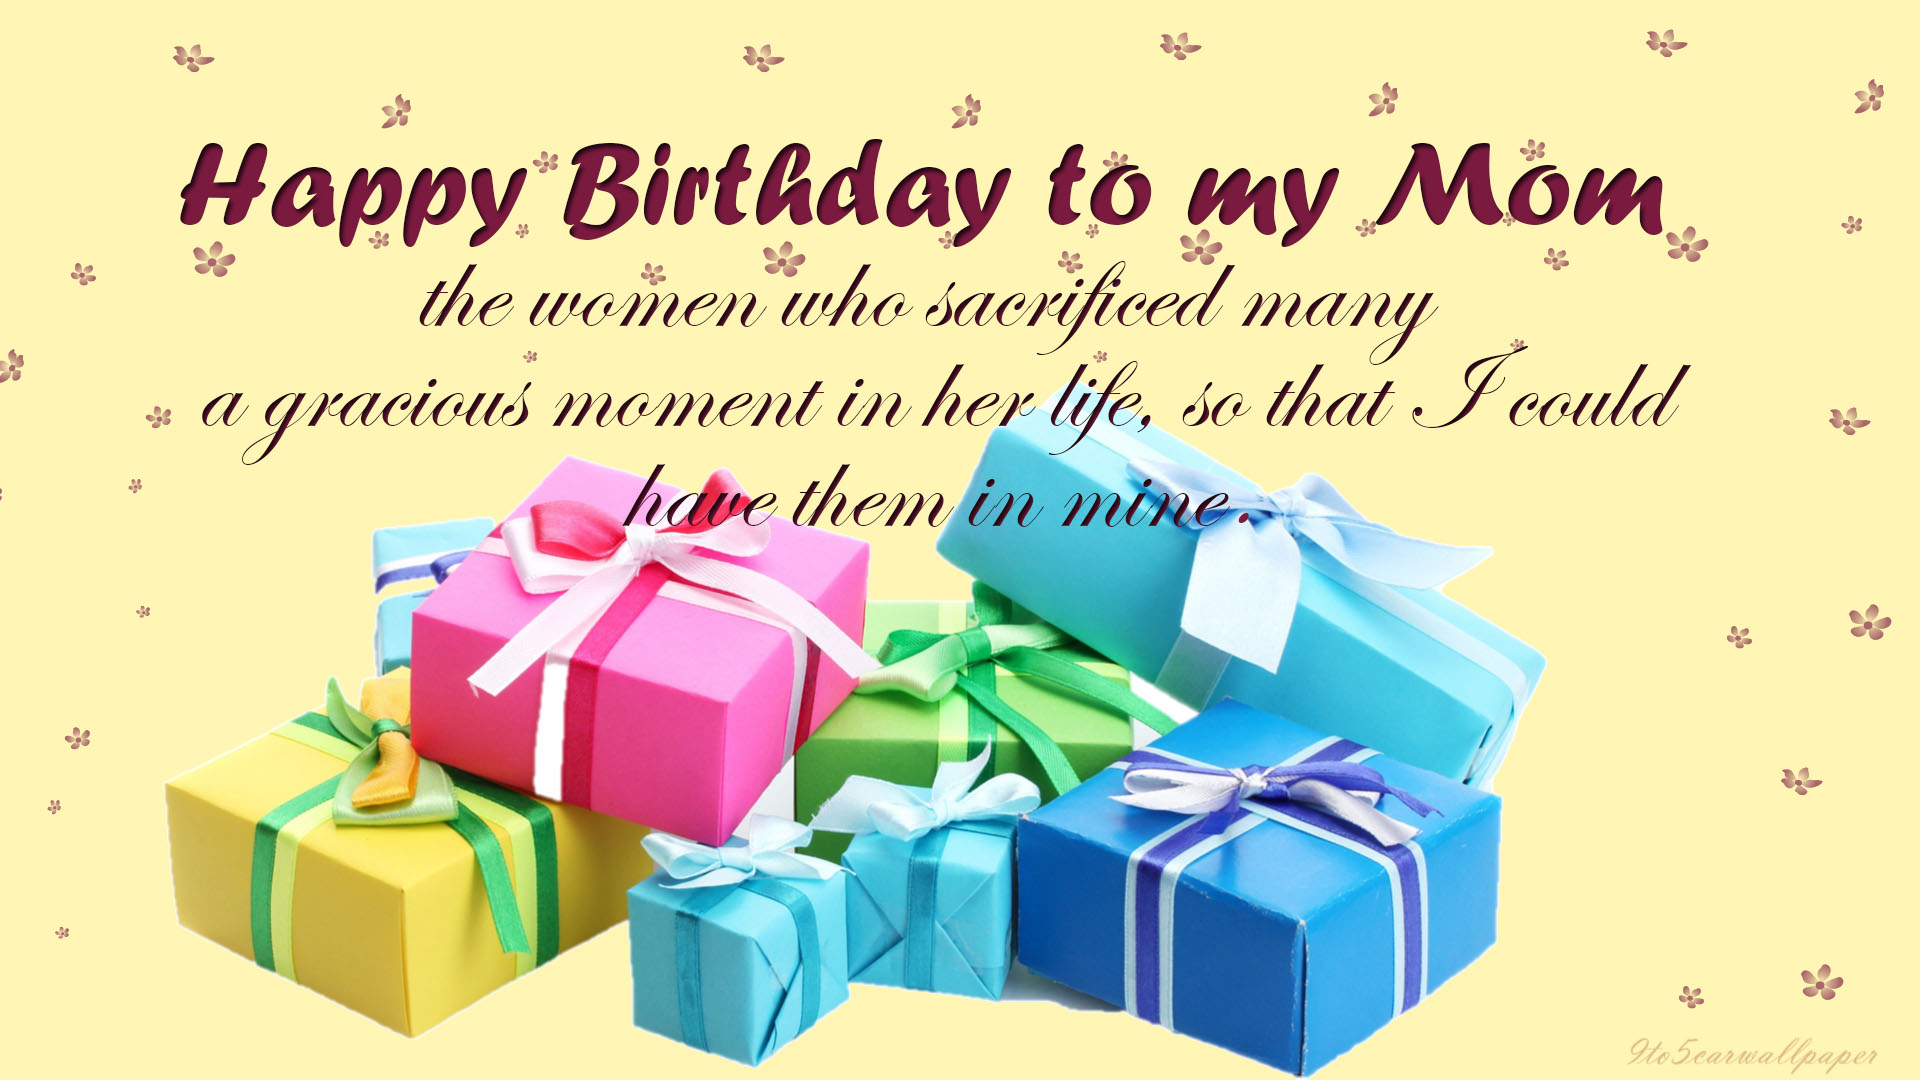 happy birthday hd images 2018 ; happy-birthday-mom-cards-wishes-quotes-prayers-2018